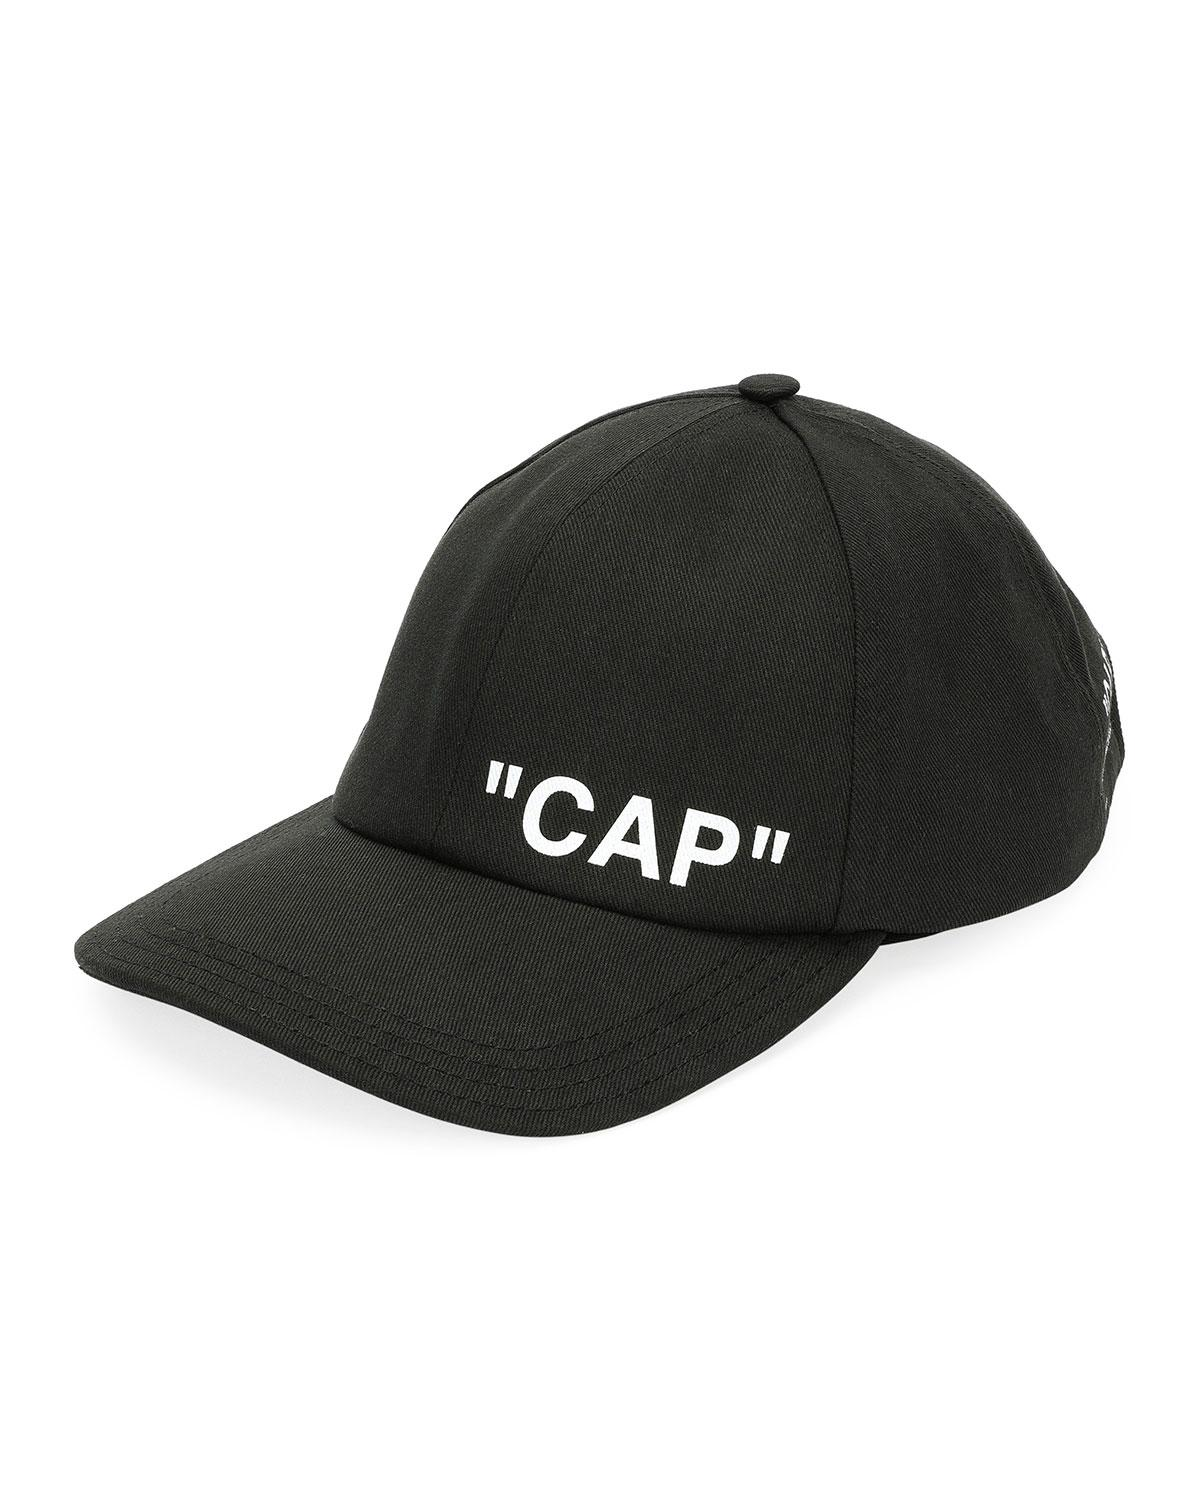 564118d70d1 Off-White C O Virgil Abloh Quote Baseball Cap in Black for Men ...